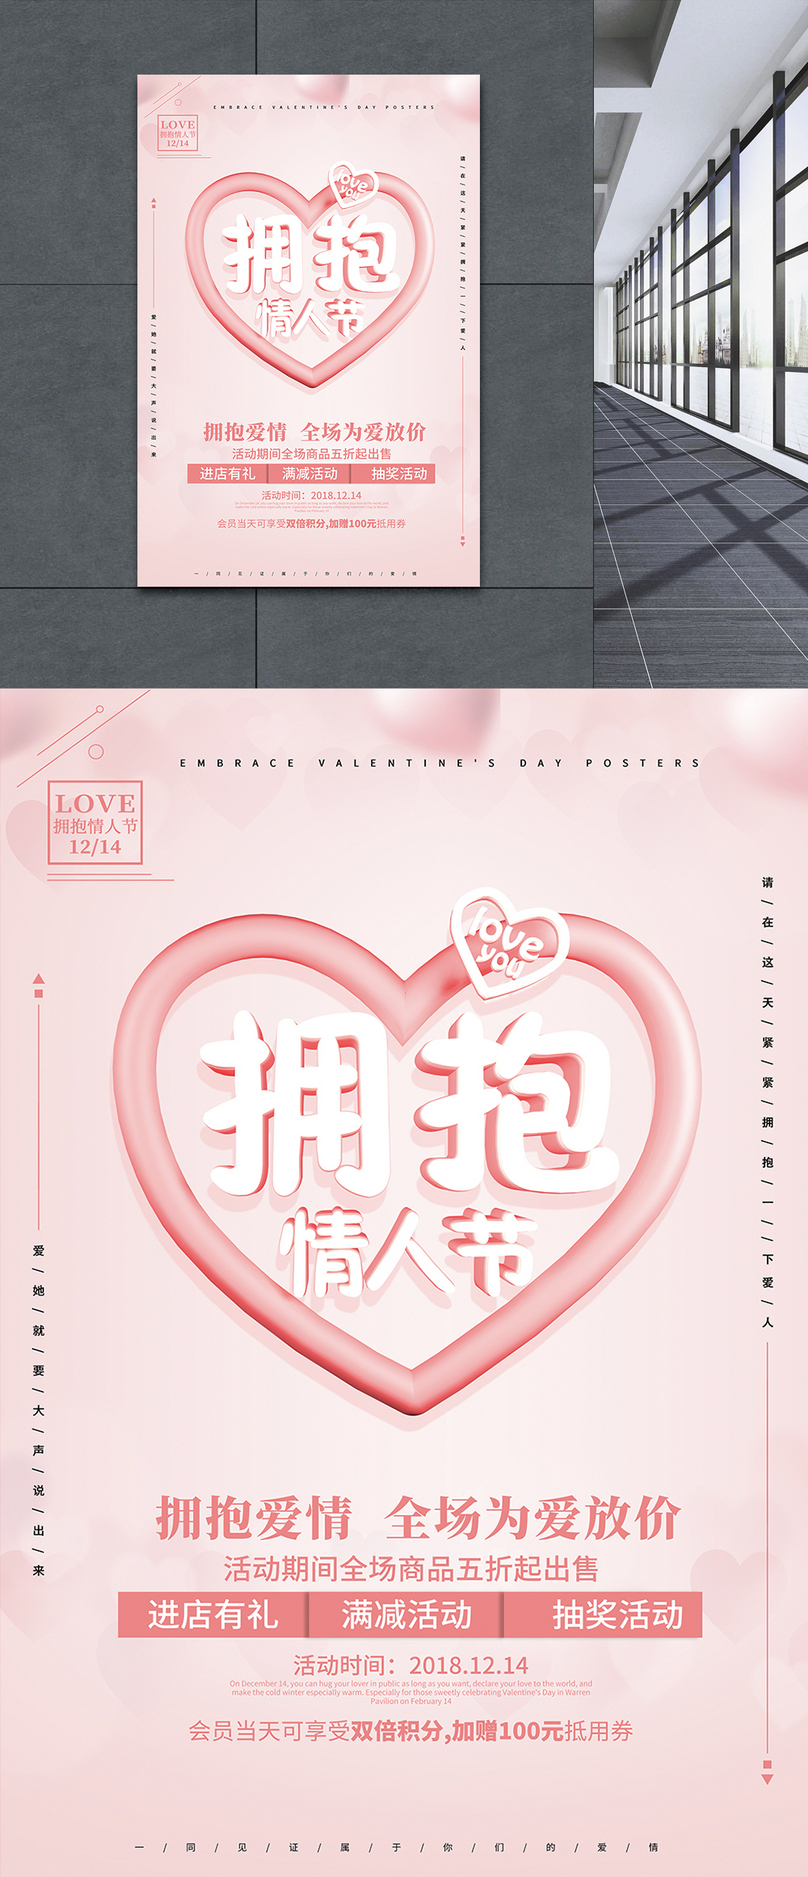 Pink Aesthetic Love Embrace Valentines Day Poster Template